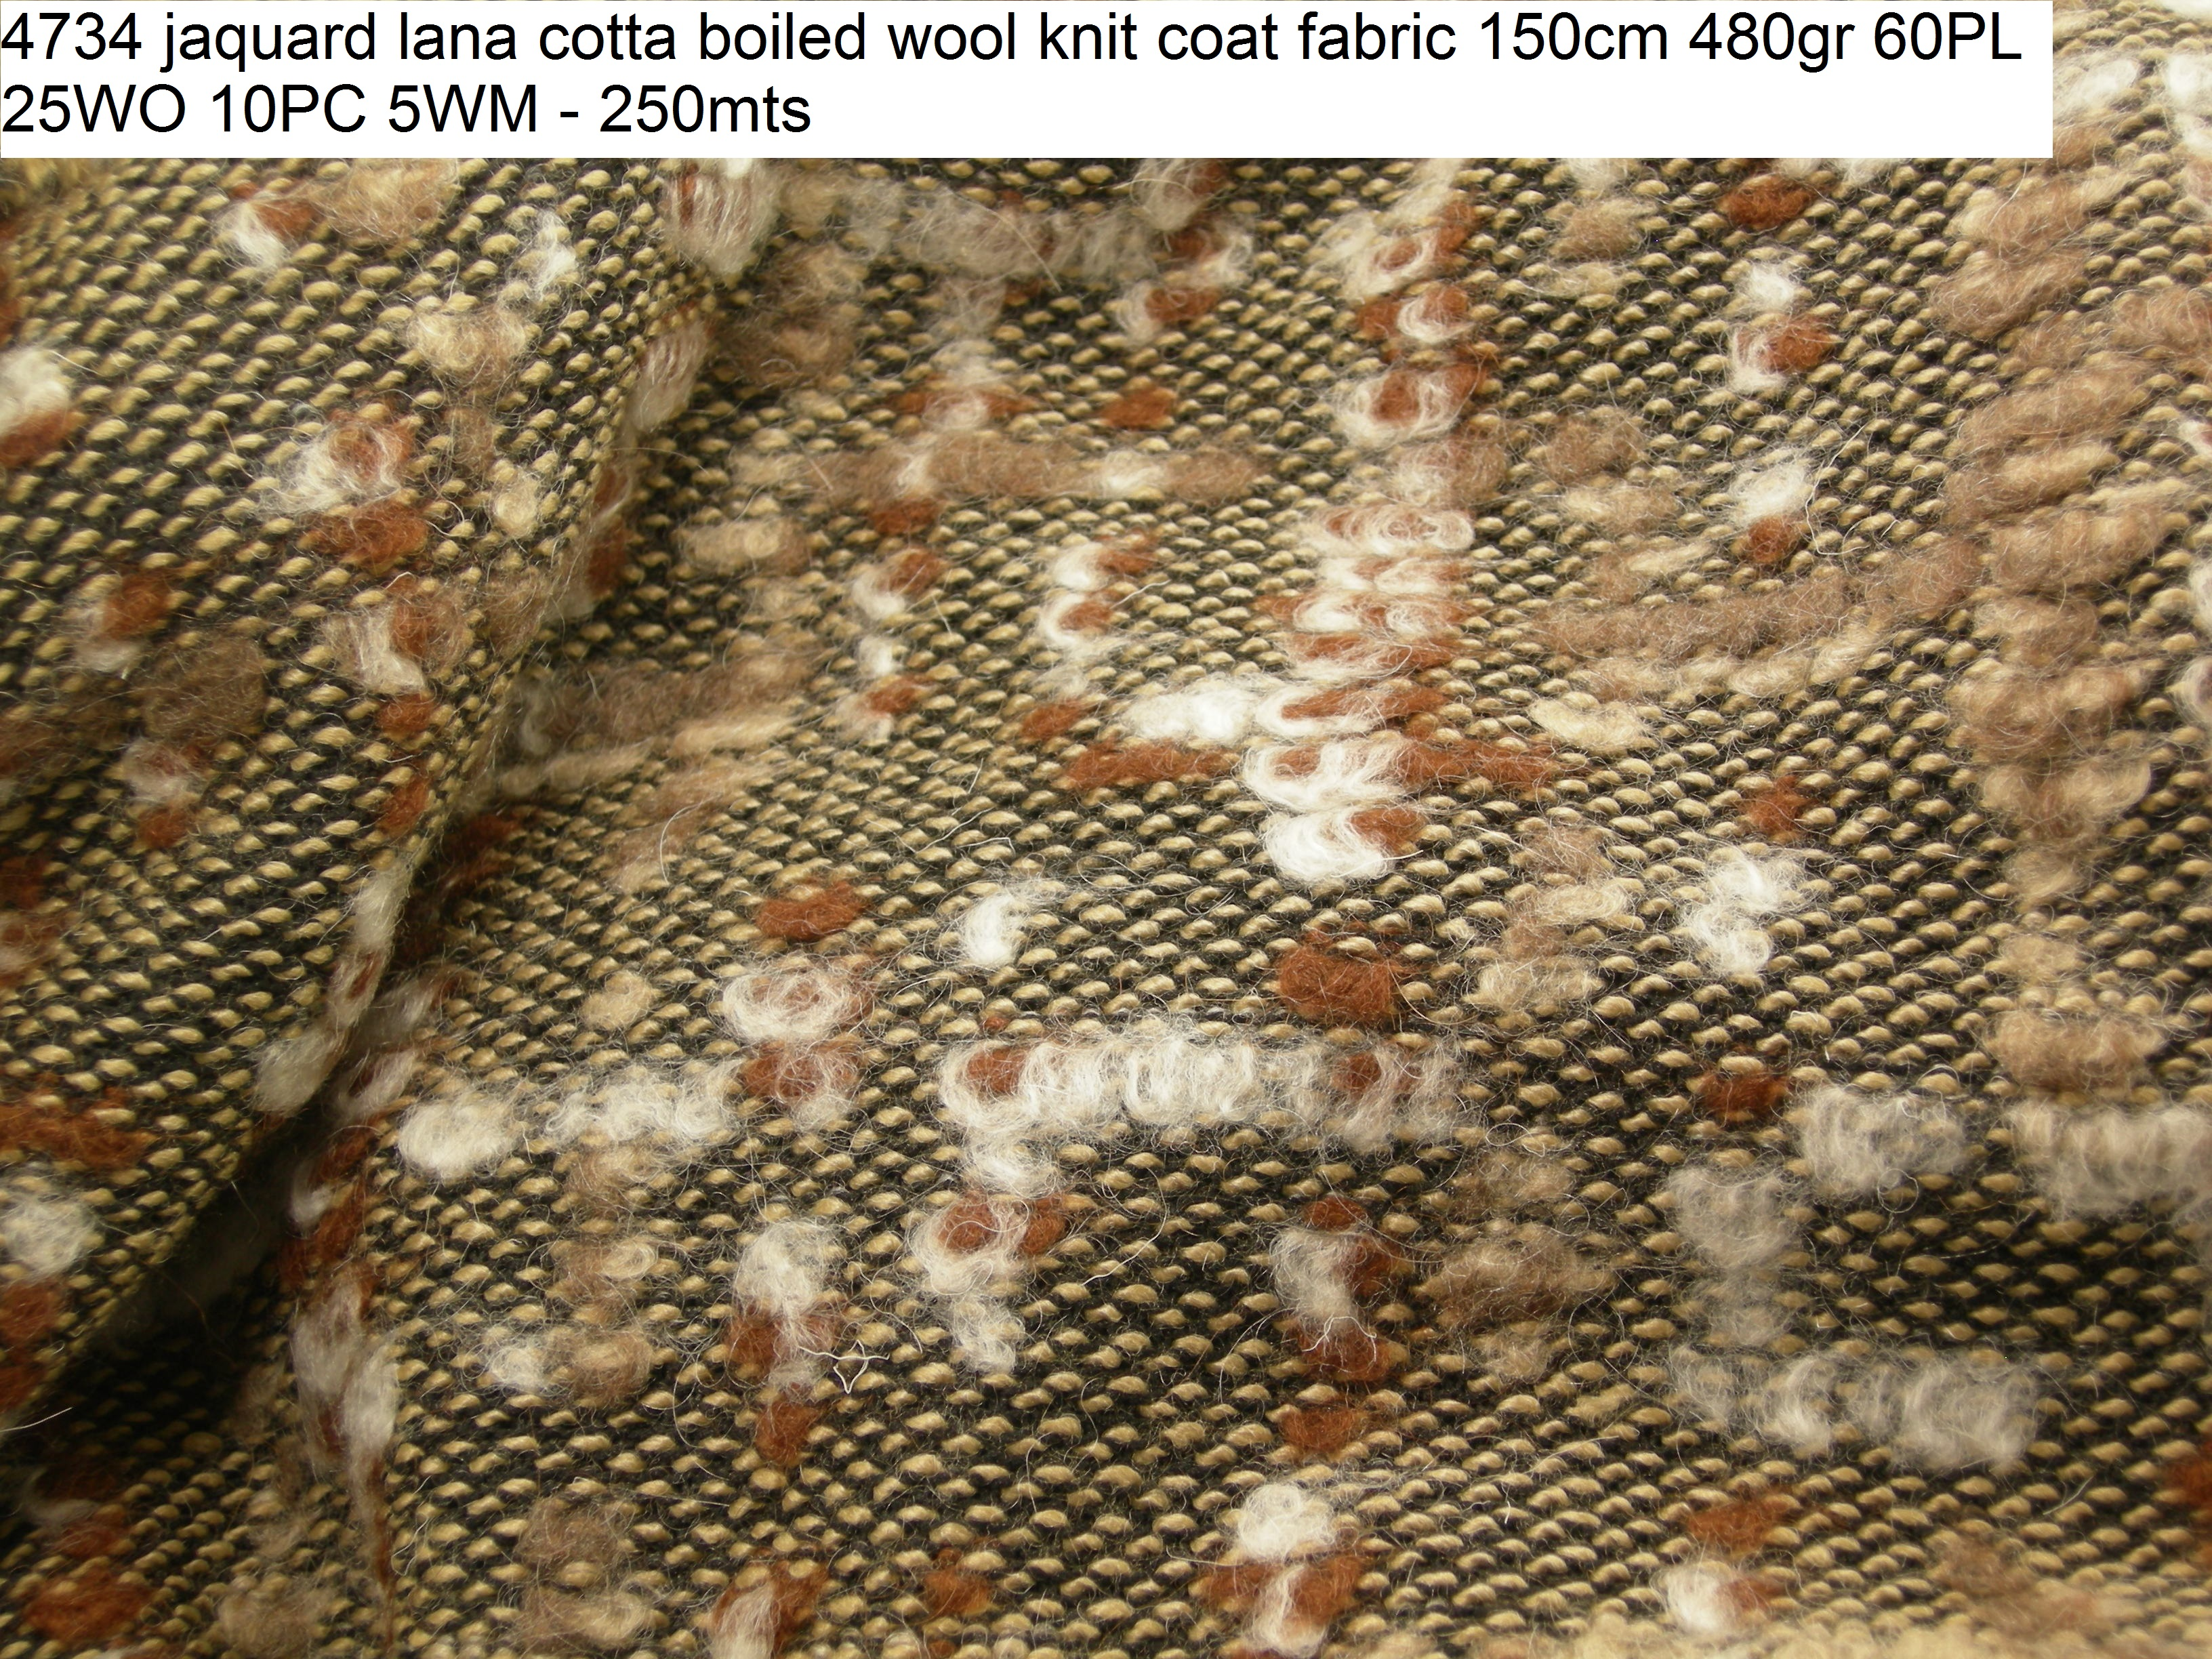 4734 jaquard lana cotta boiled wool knit coat fabric 150cm 480gr 60PL 25WO 10PC 5WM - 250mts